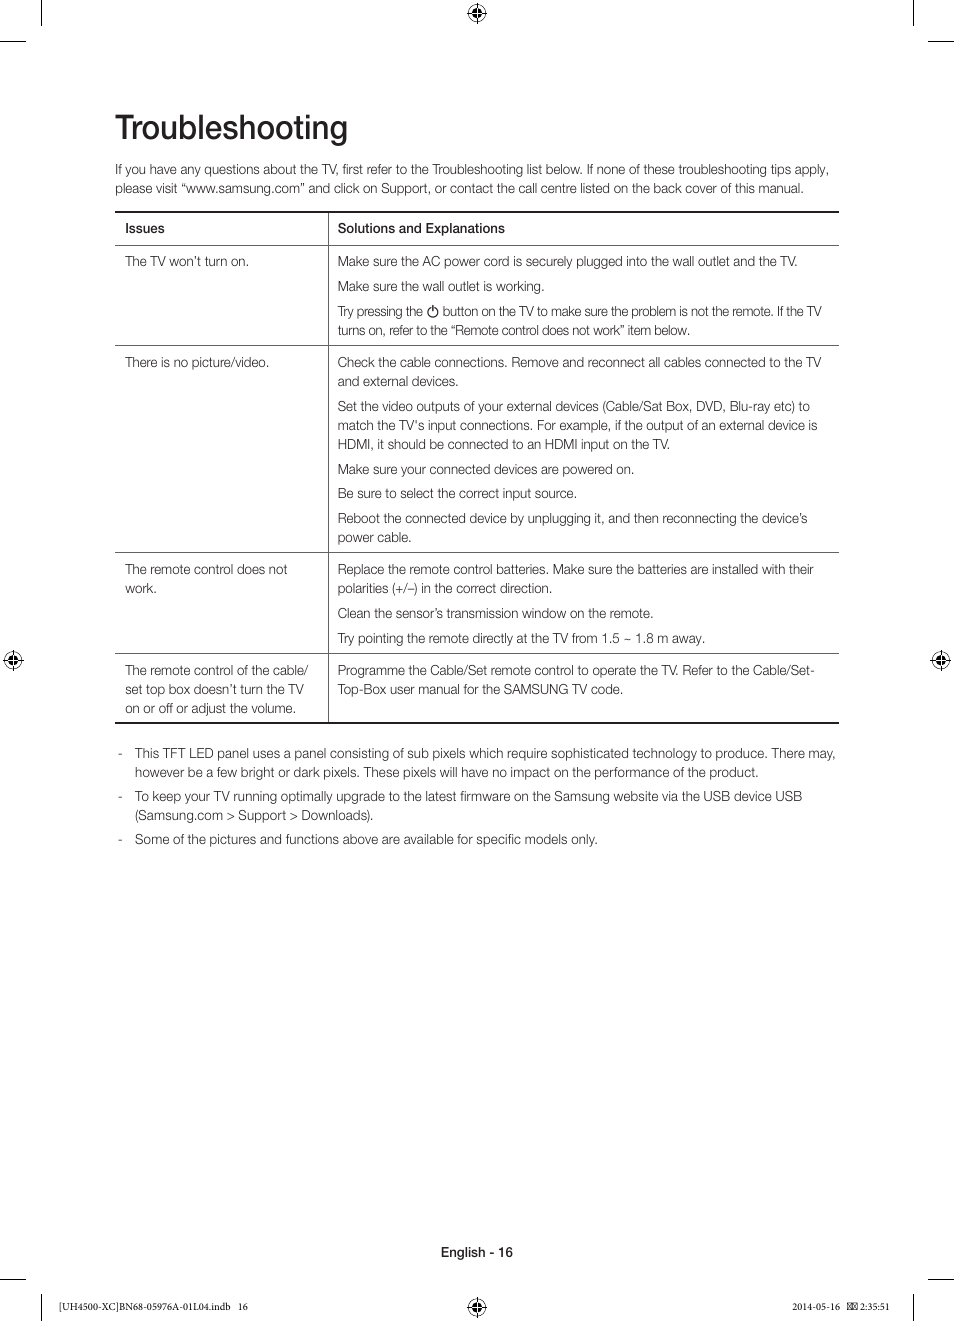 Troubleshooting   Samsung UE32H4500AW User Manual   Page 16 / 73